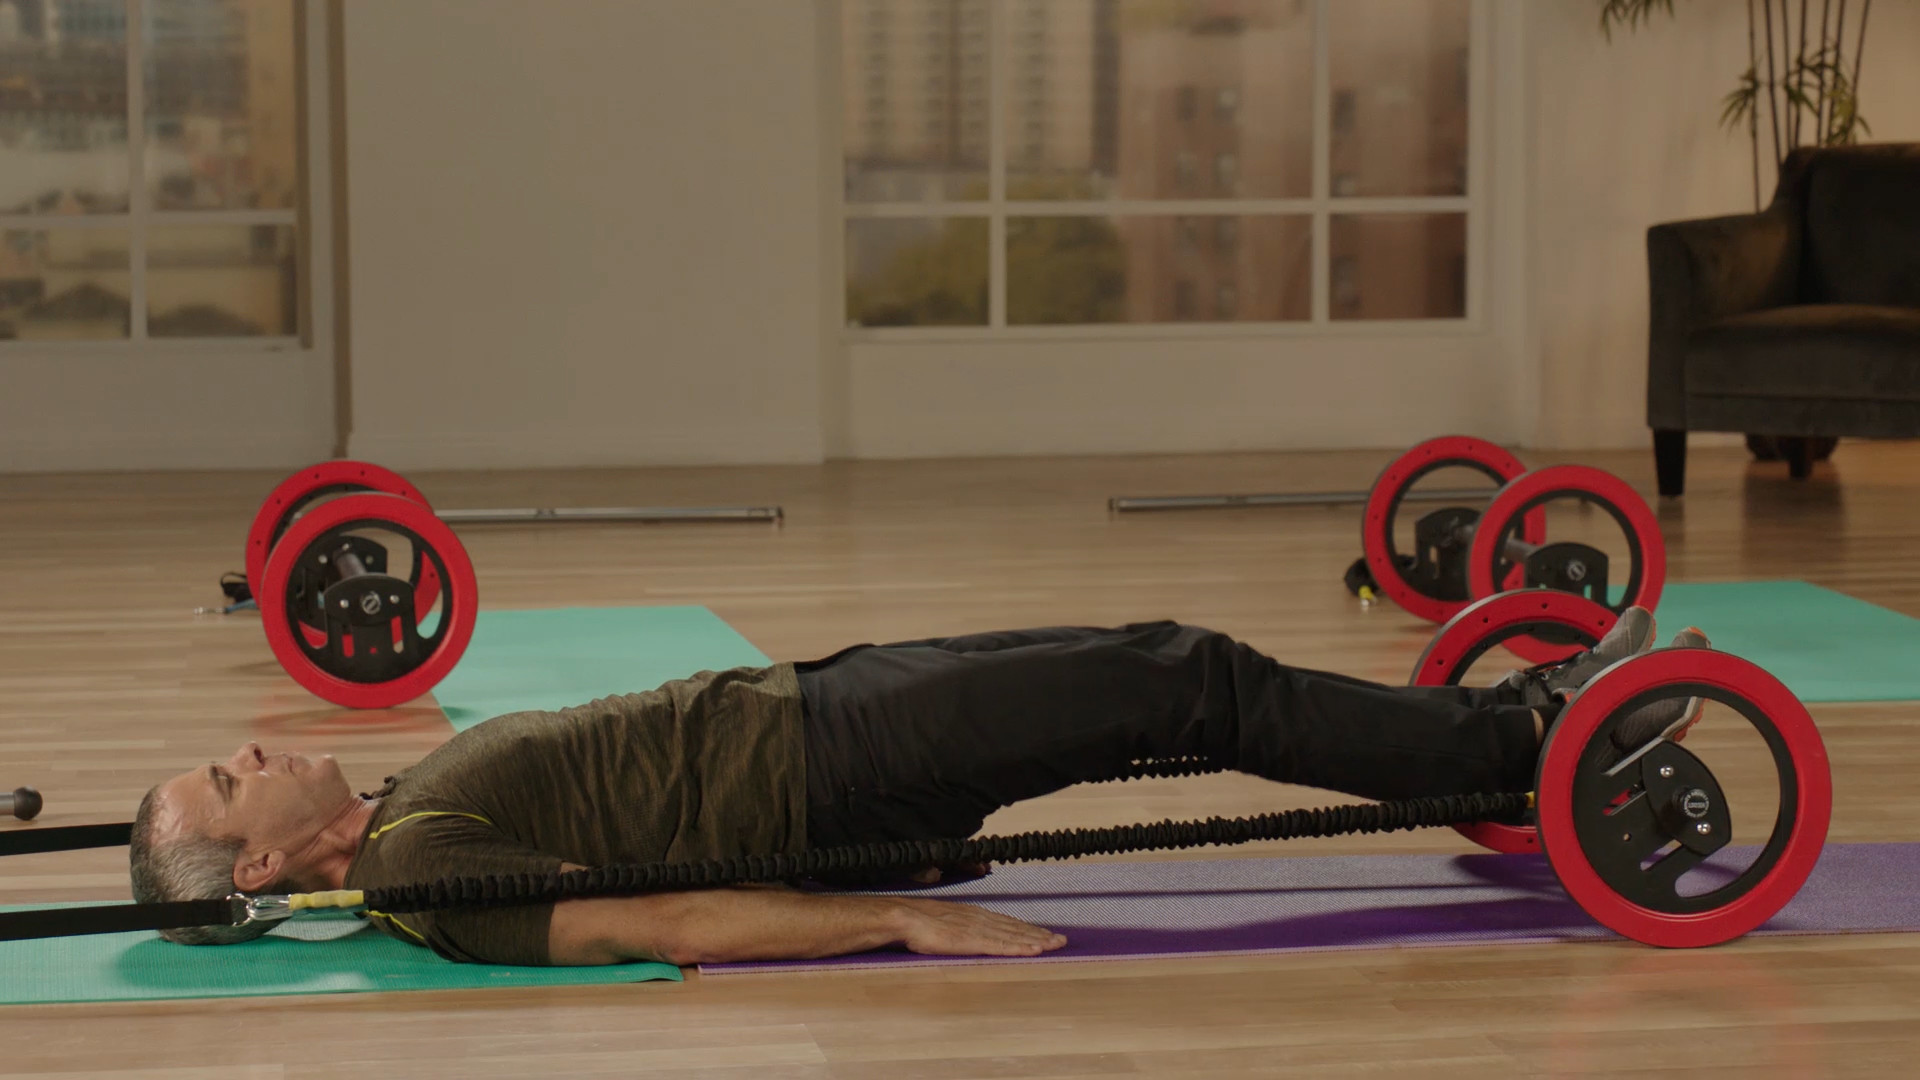 Poor man's Pilates. Assembled in 5 minutes, the Pilates Wheel lets you replicate a range of reformer